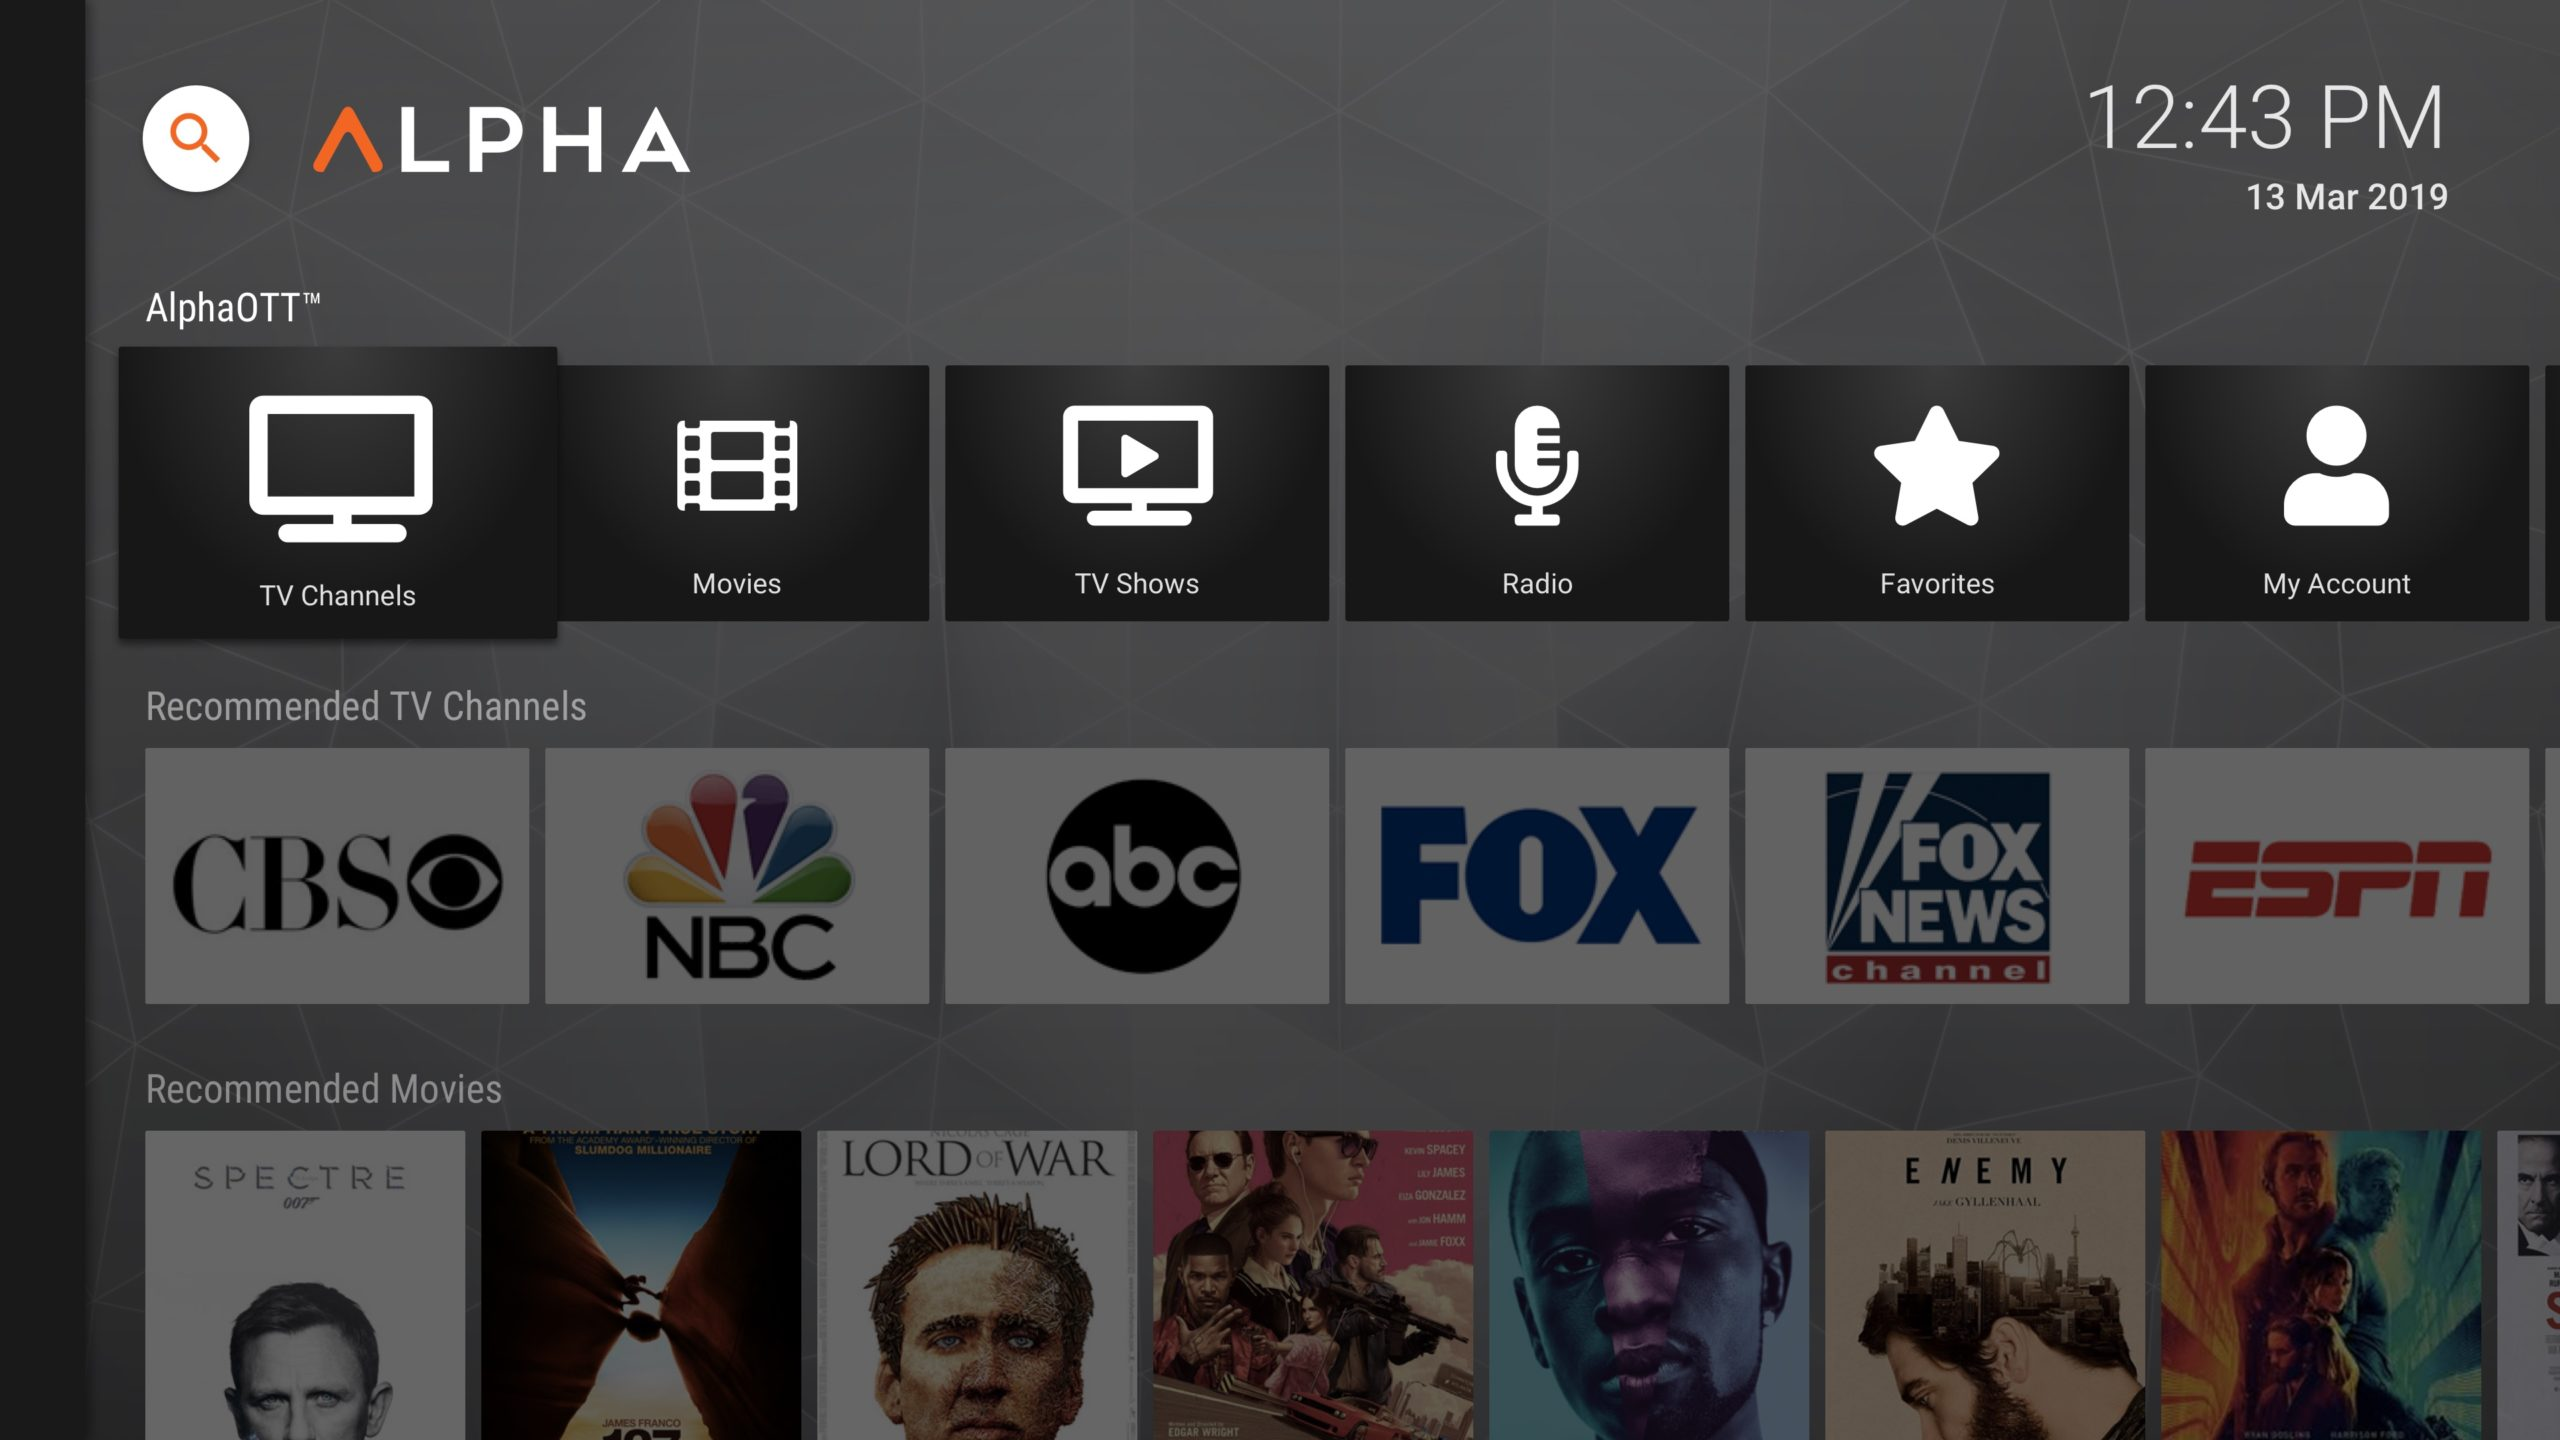 New UI for AndroidTV, FireTV, and AOSP